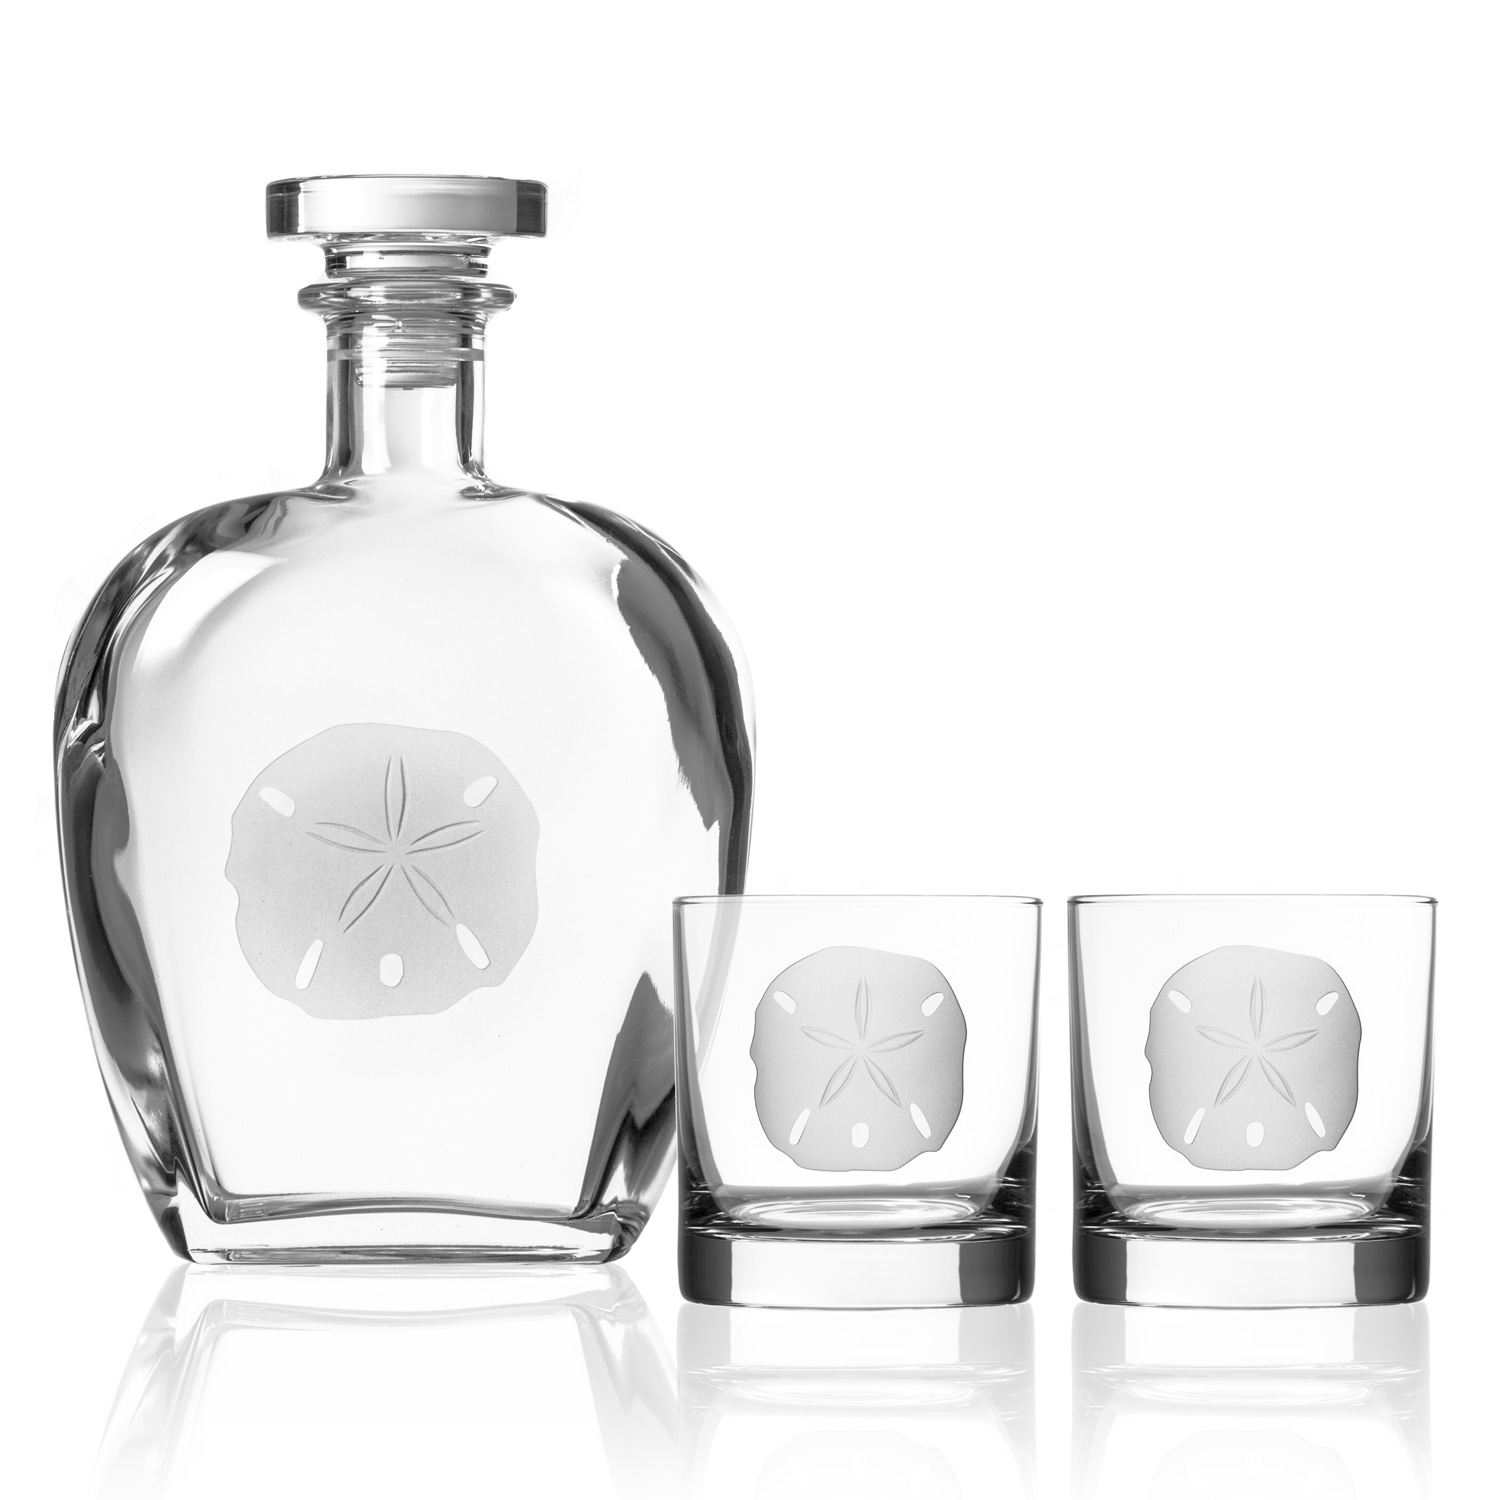 Sand Dollar Decanter and matching rocks glasses - a great gift idea